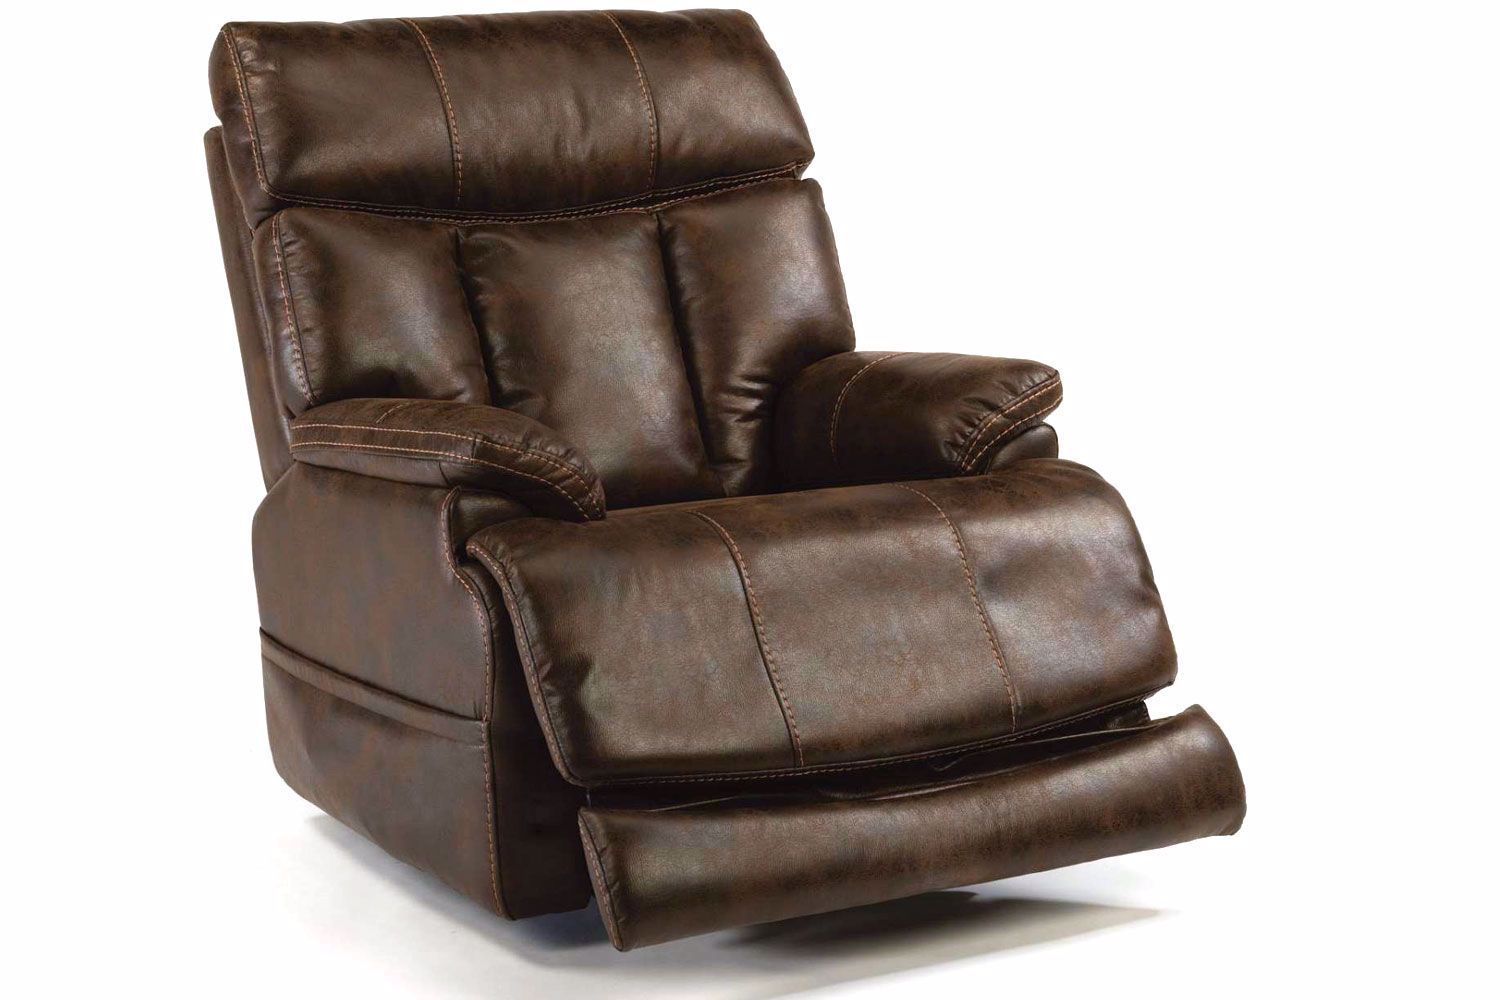 Braden Power Recliner